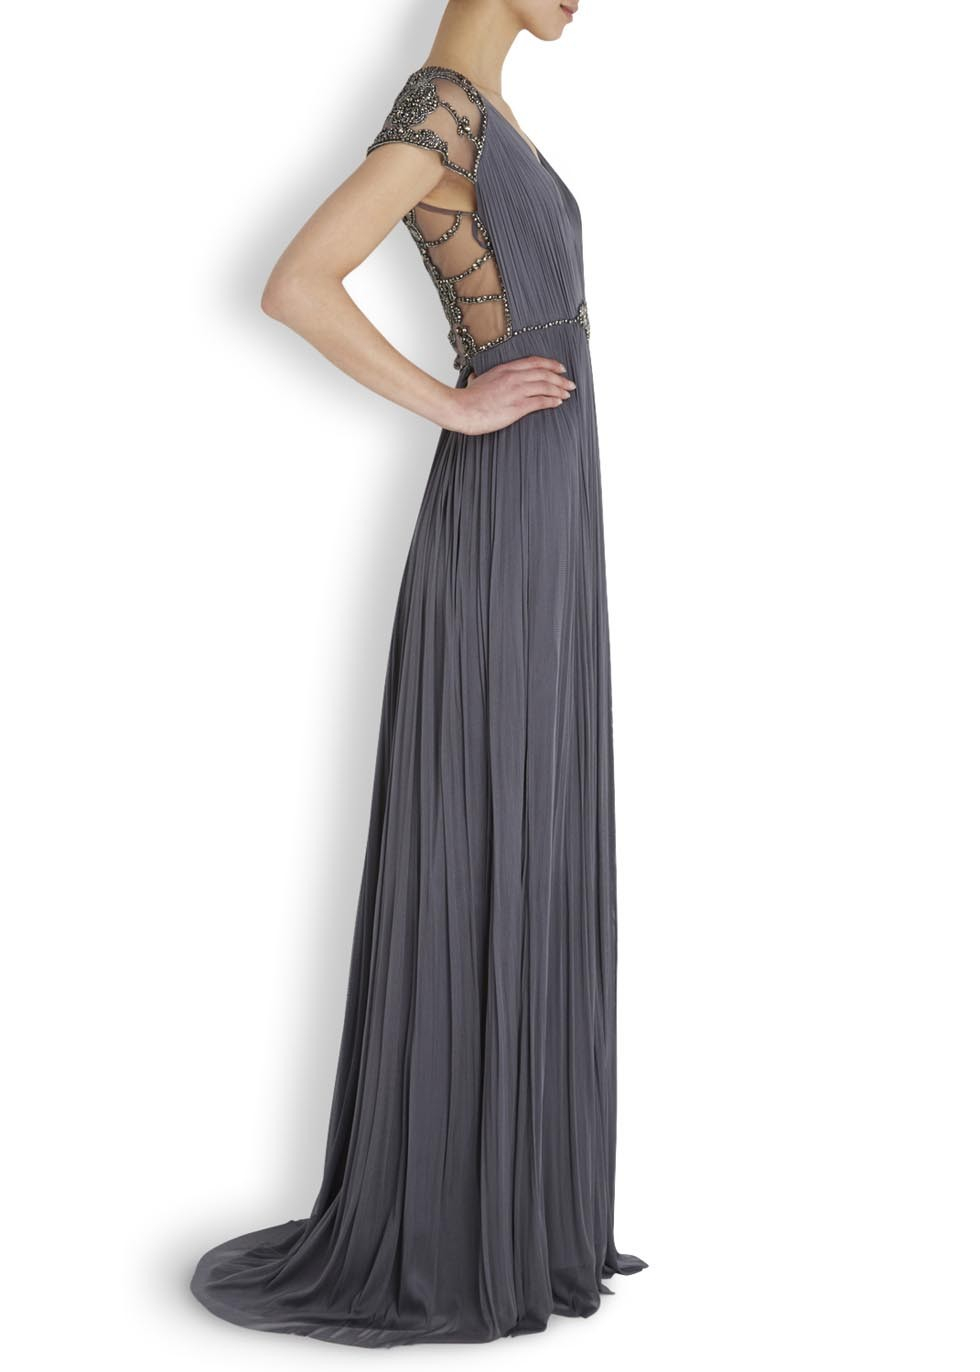 Catherine Deane Simone Gown - Best Gowns And Dresses Ideas & Reviews